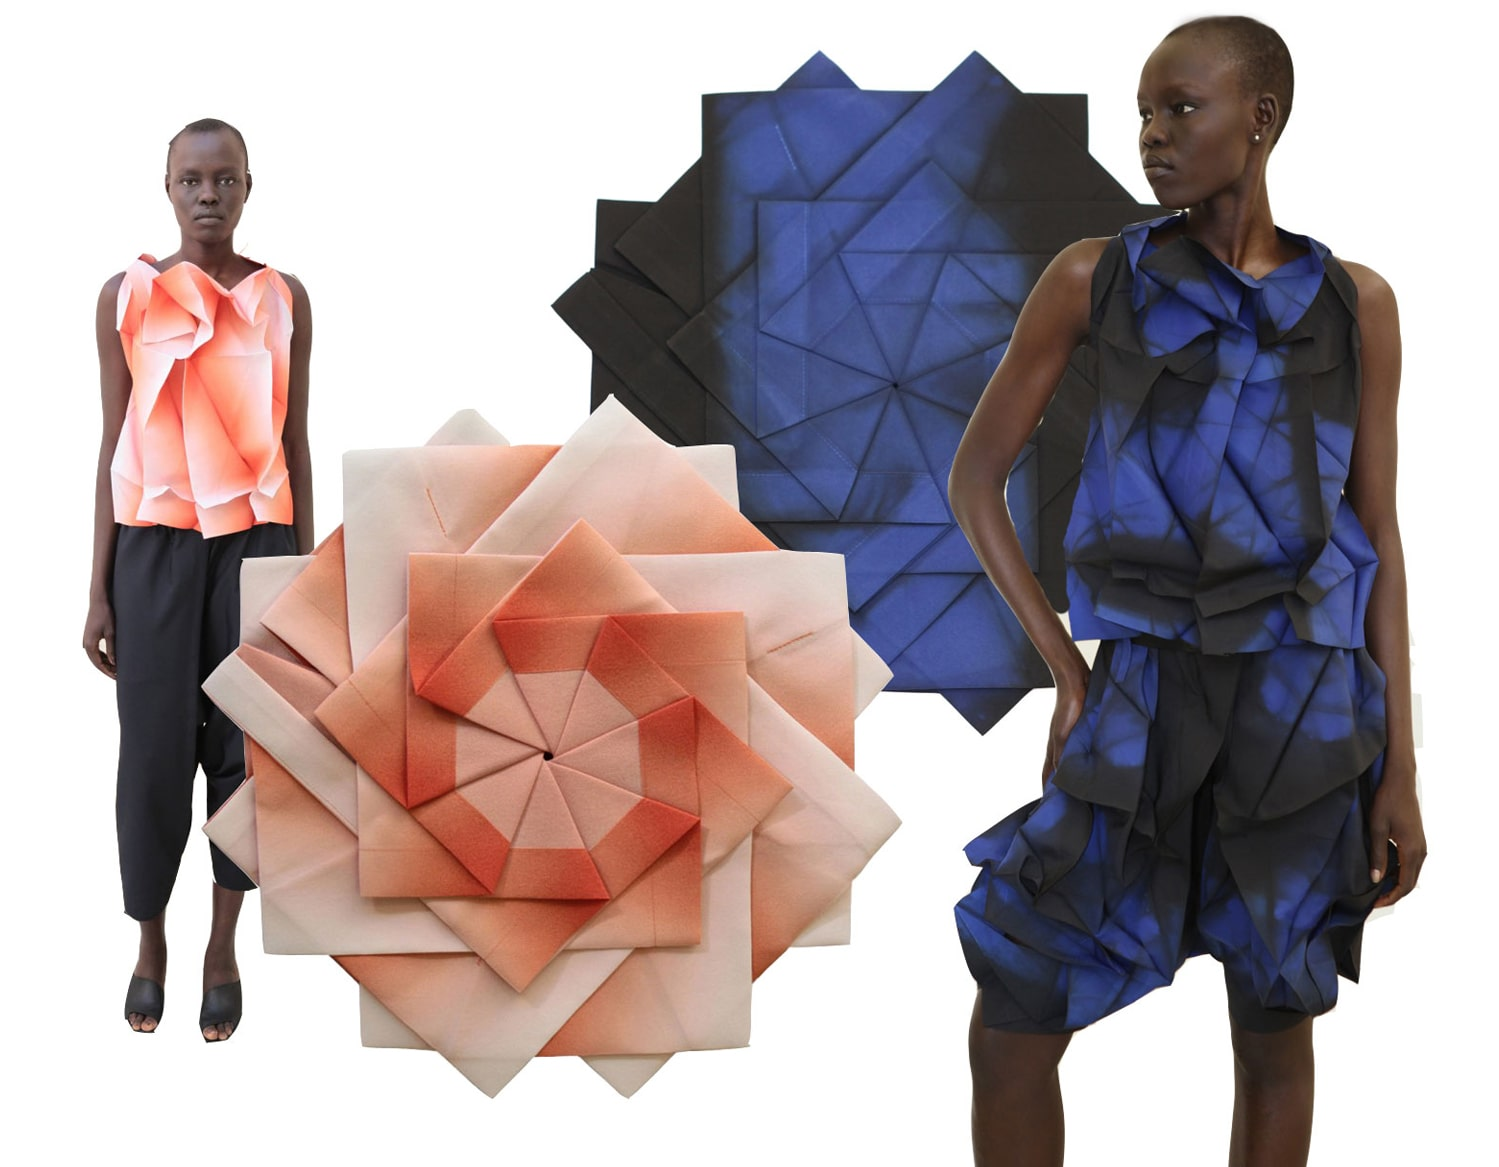 cloth that can be folded into flat geometric shapes by 132 5. ISSEY MIYAKE